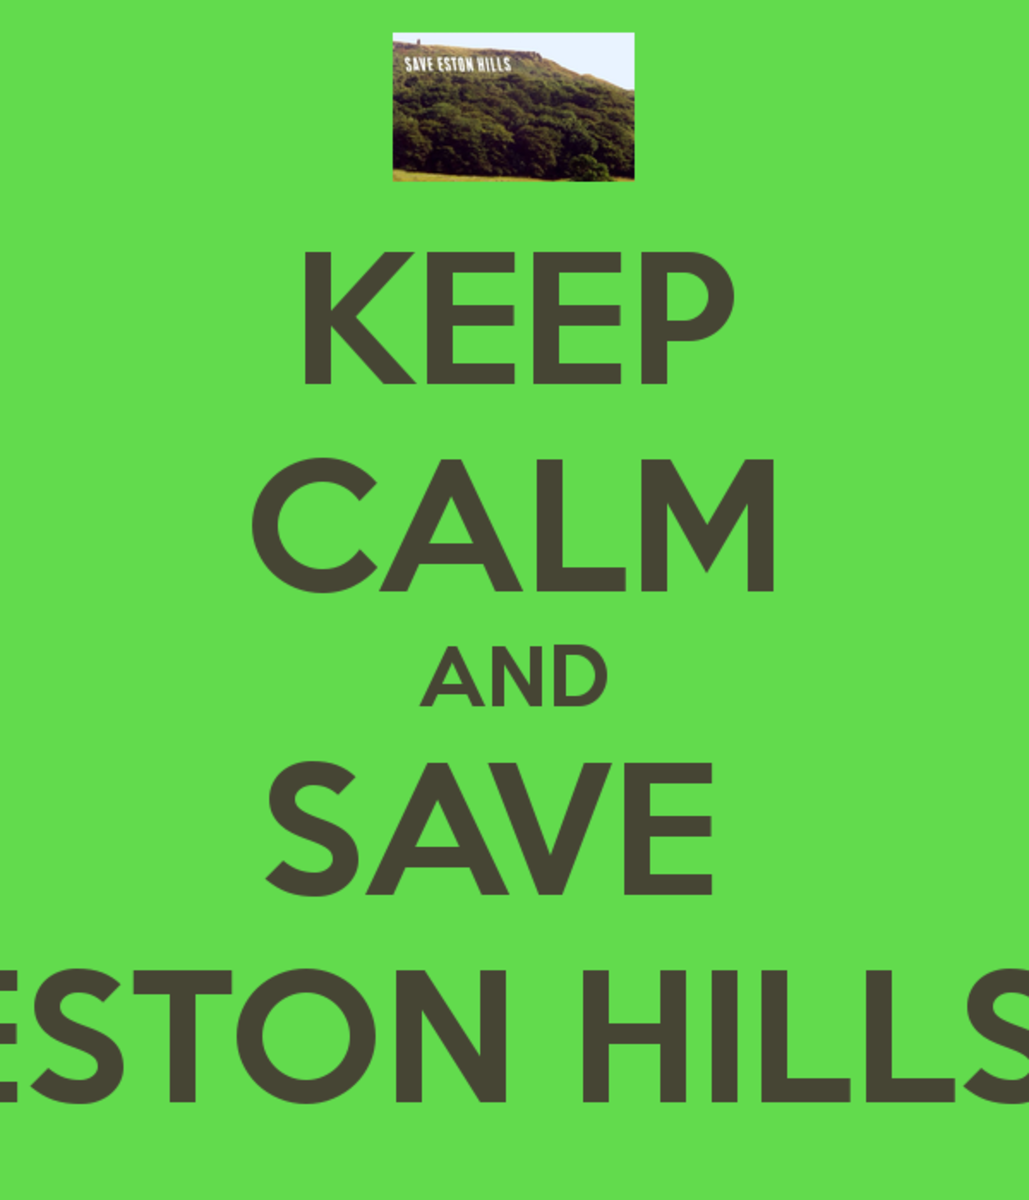 Friends of Eston Hills - see the feature at the bottom of this page